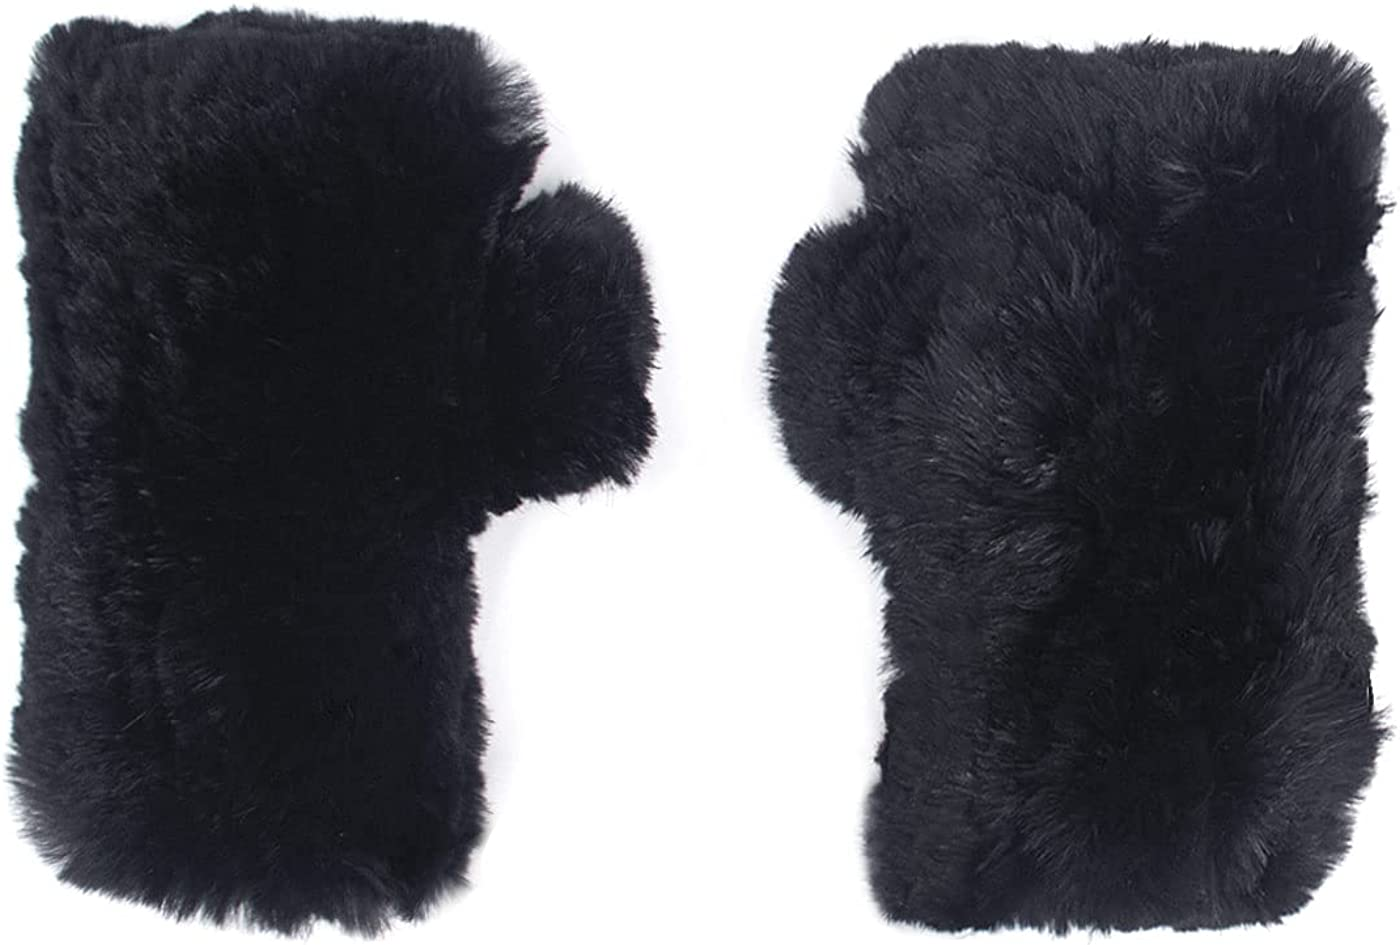 Surell Sheared Rabbit Fingerless Glove - Winter Texting Mittens - Luxury Cold Weather Clothing